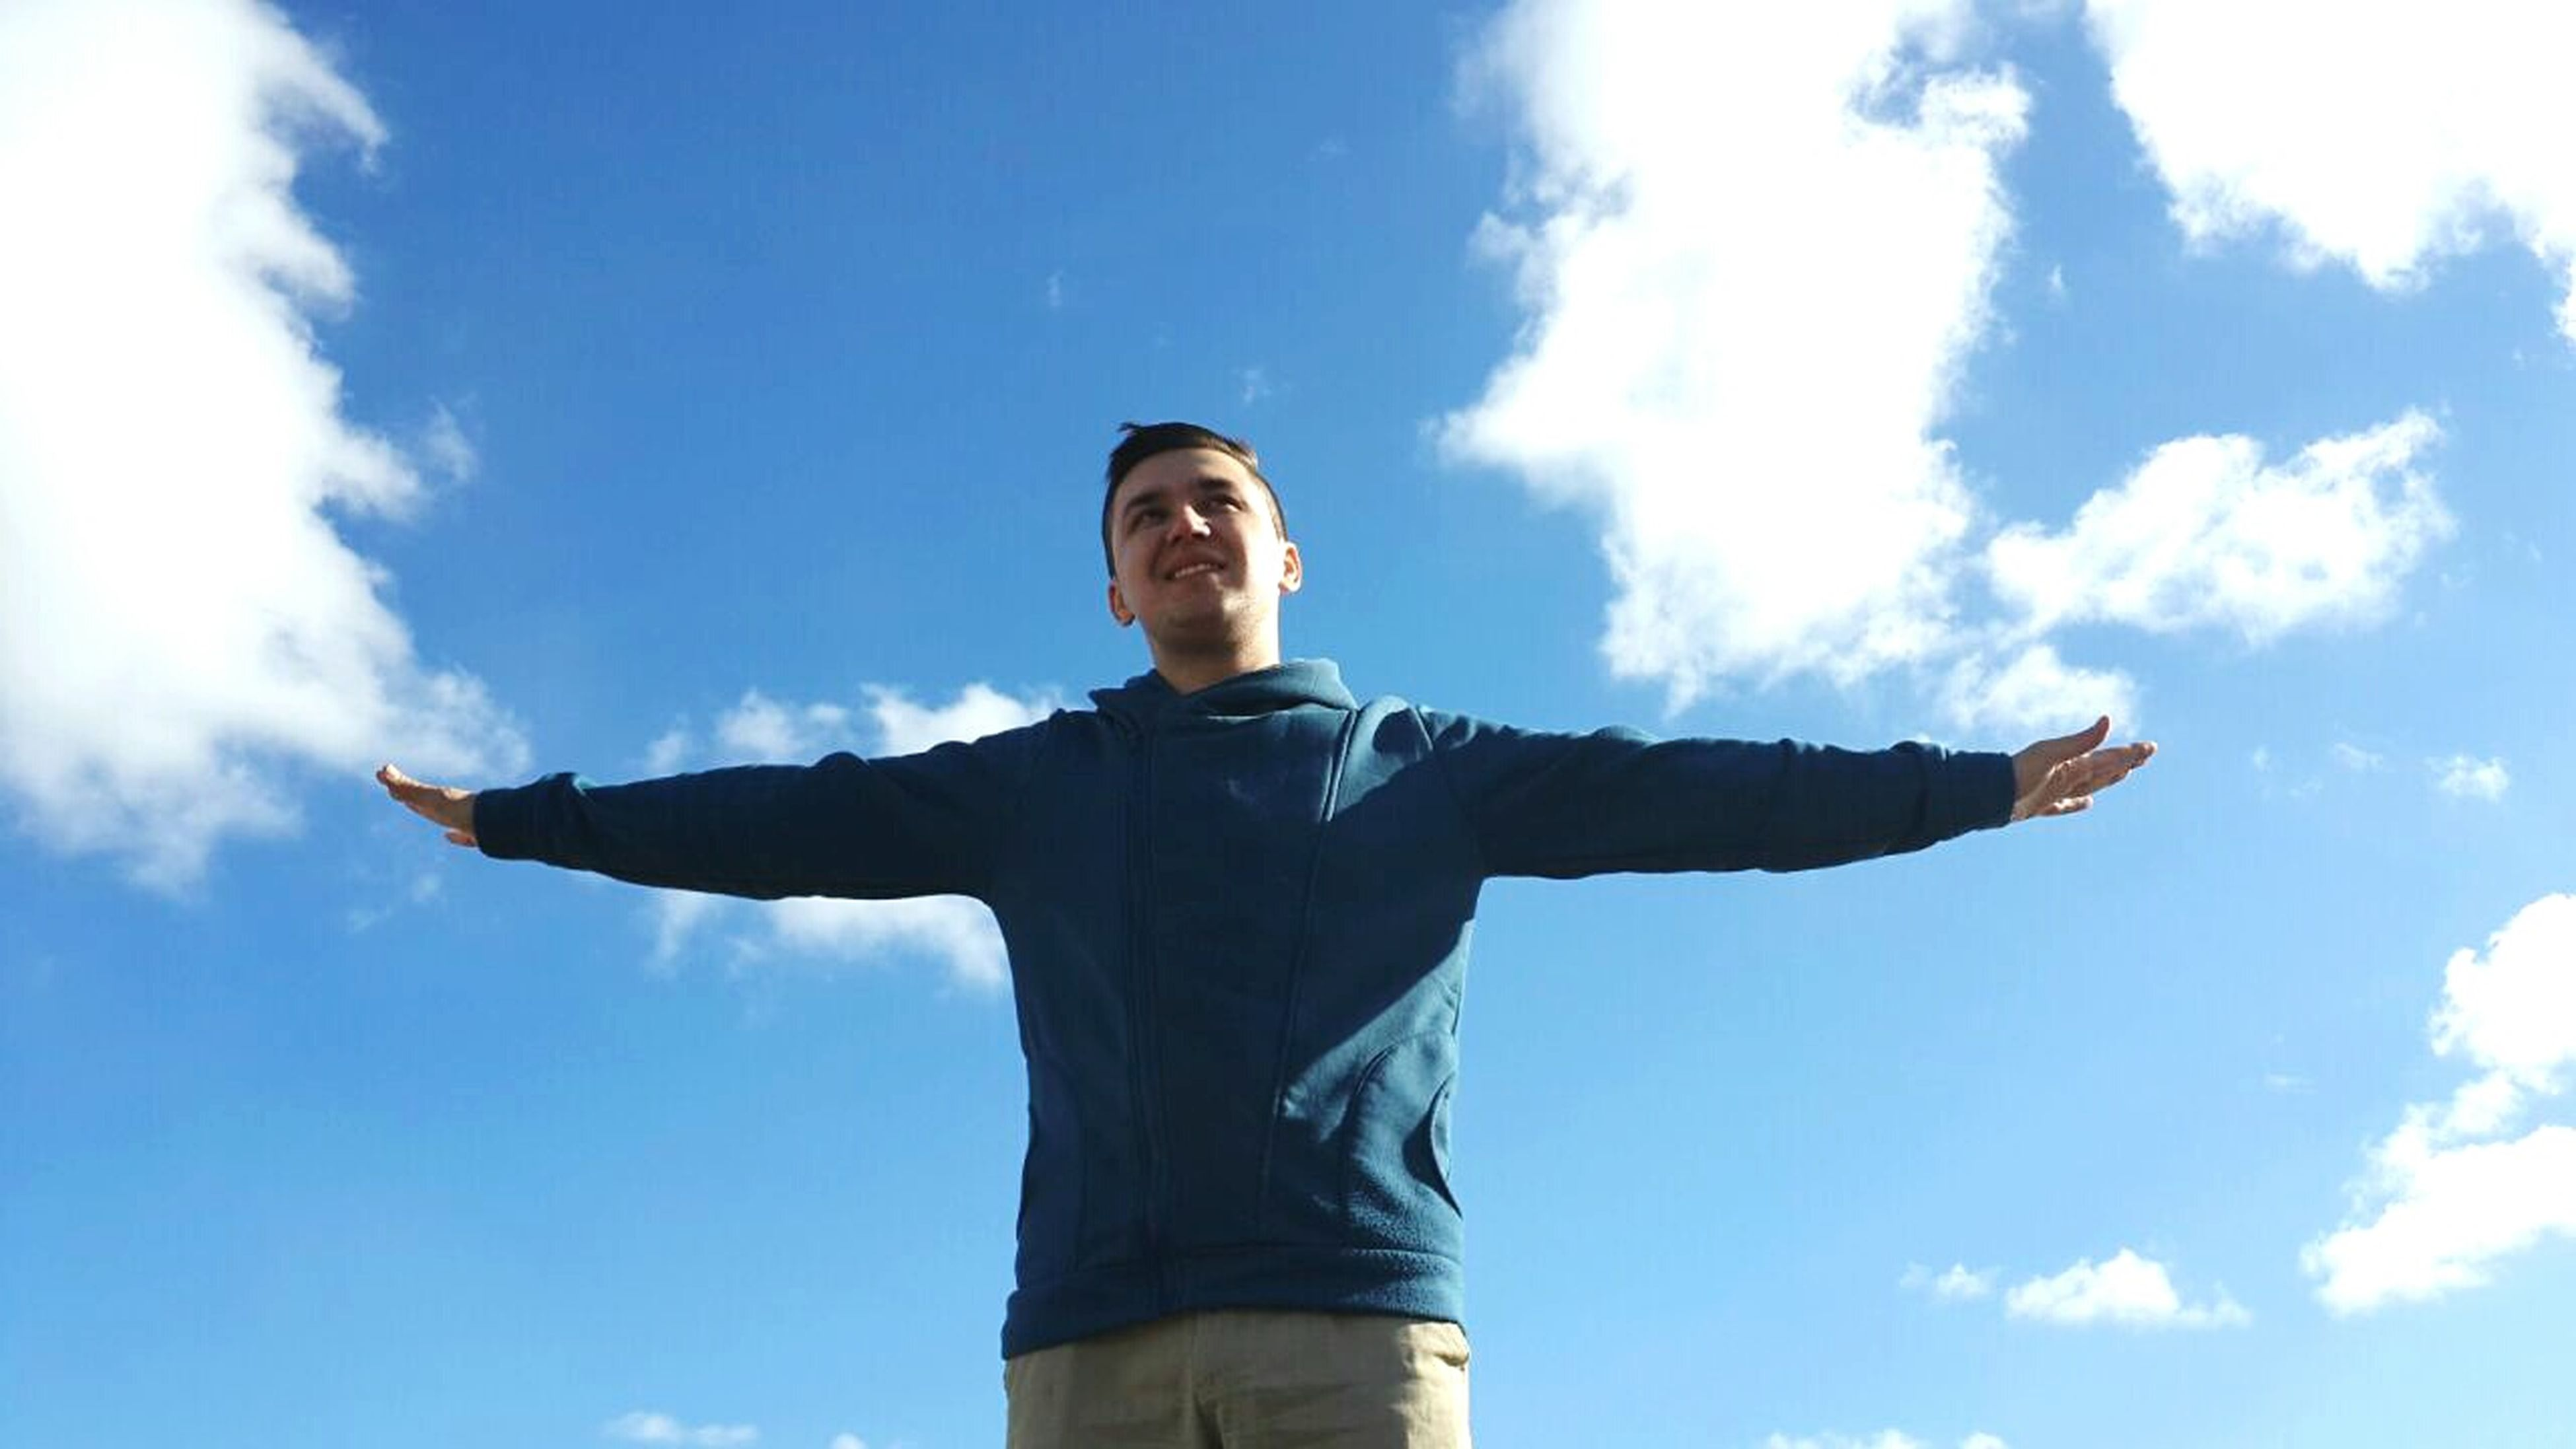 low angle view, sky, cloud - sky, blue, standing, cloud, portrait, young adult, looking at camera, human representation, casual clothing, lifestyles, day, cloudy, leisure activity, outdoors, front view, person